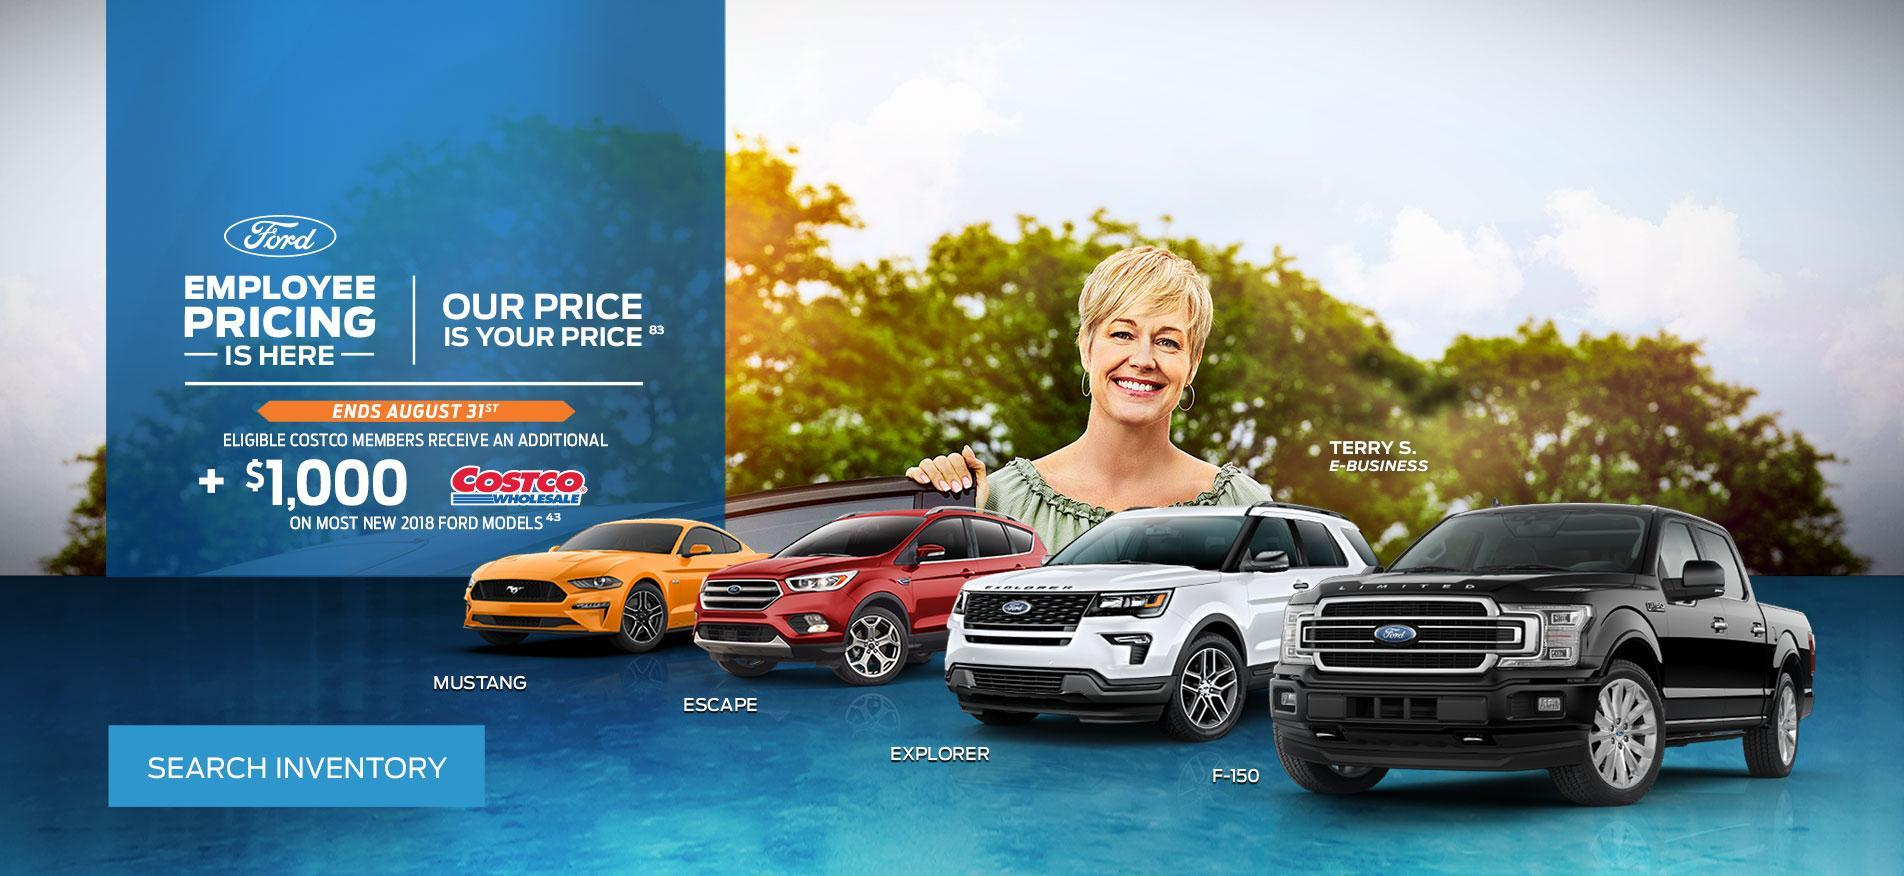 Cambrian Ford Employee Pricing